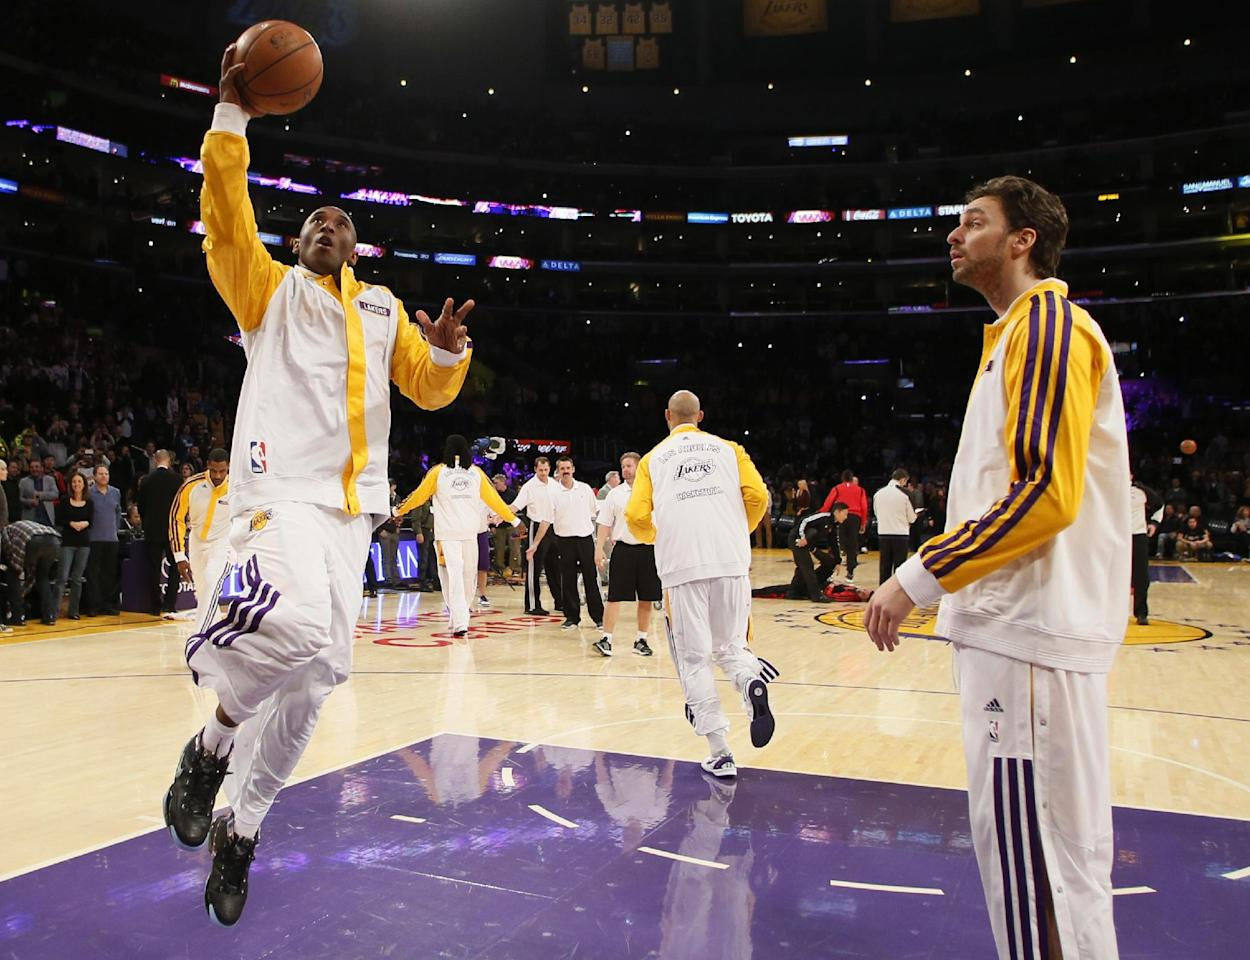 Los Angeles Lakers' Kobe Bryant makes his first layup in warm-ups as Pau Gasol, right, of Spain, looks on before the NBA basketball game against the Toronto Raptors  in Los Angeles, Sunday, Dec. 8, 2013. Bryant is expected to make his long-awaited return from a torn left Achilles tendon injury from April 12th. (AP Photo/Danny Moloshok)